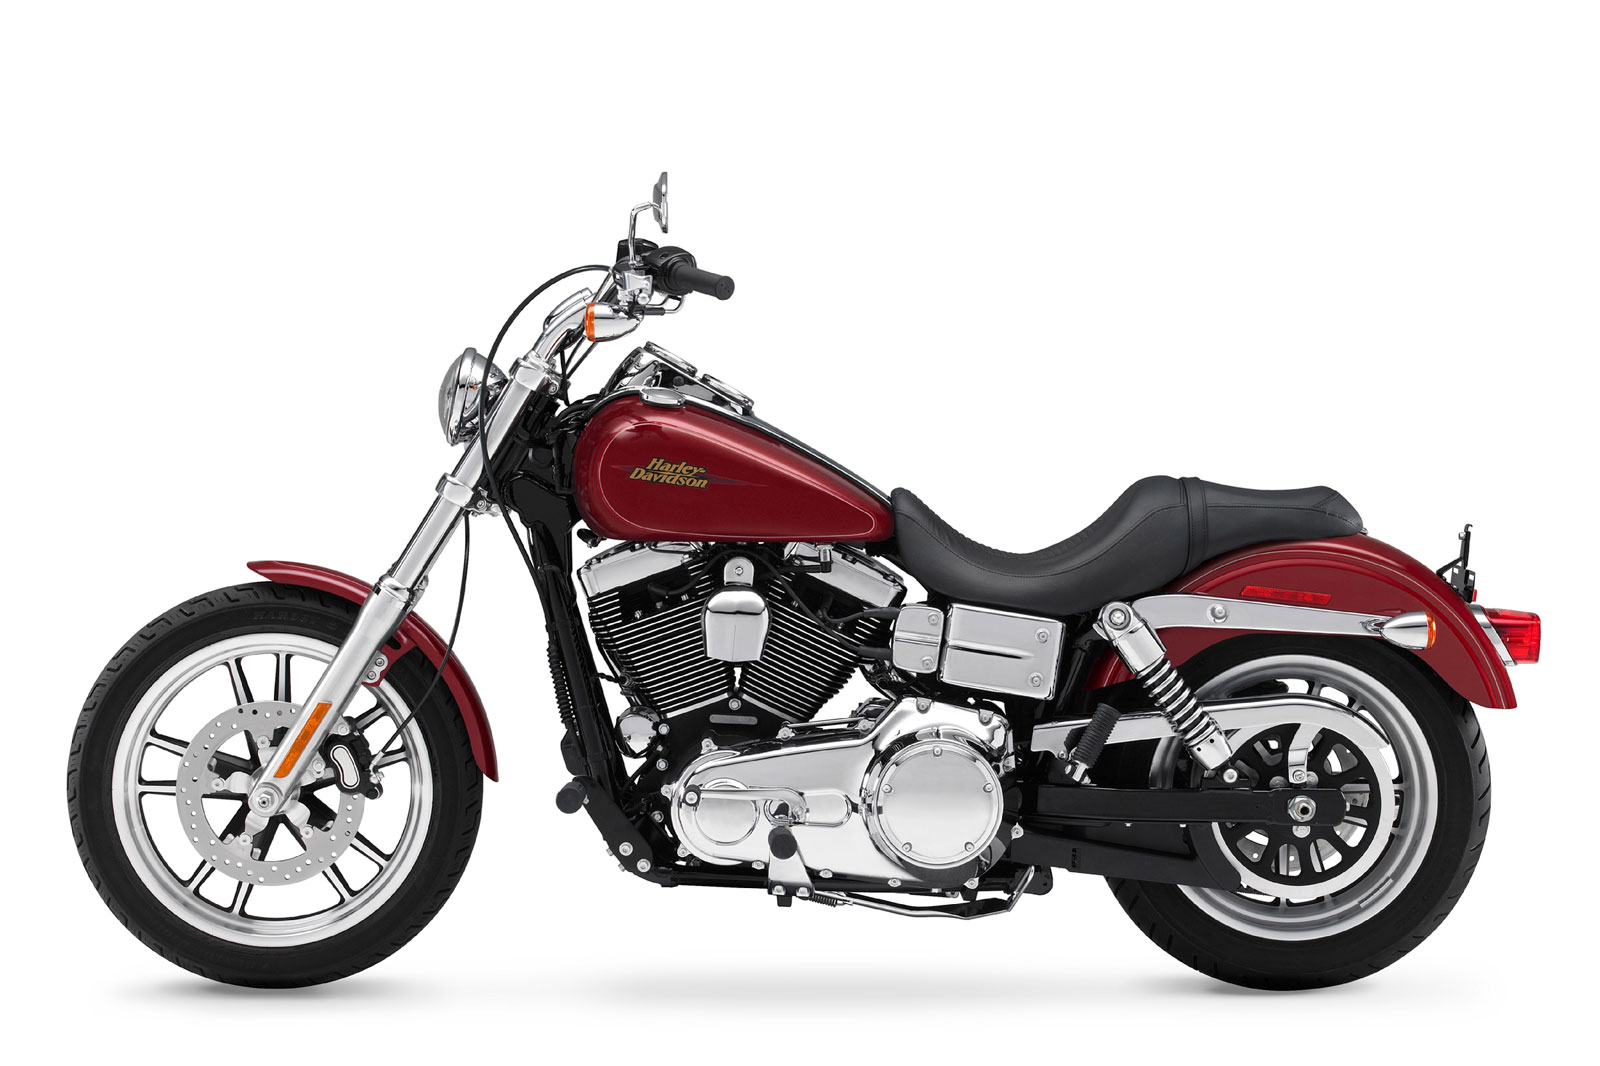 harley-davidson fxdl dyna low rider-pic. 3